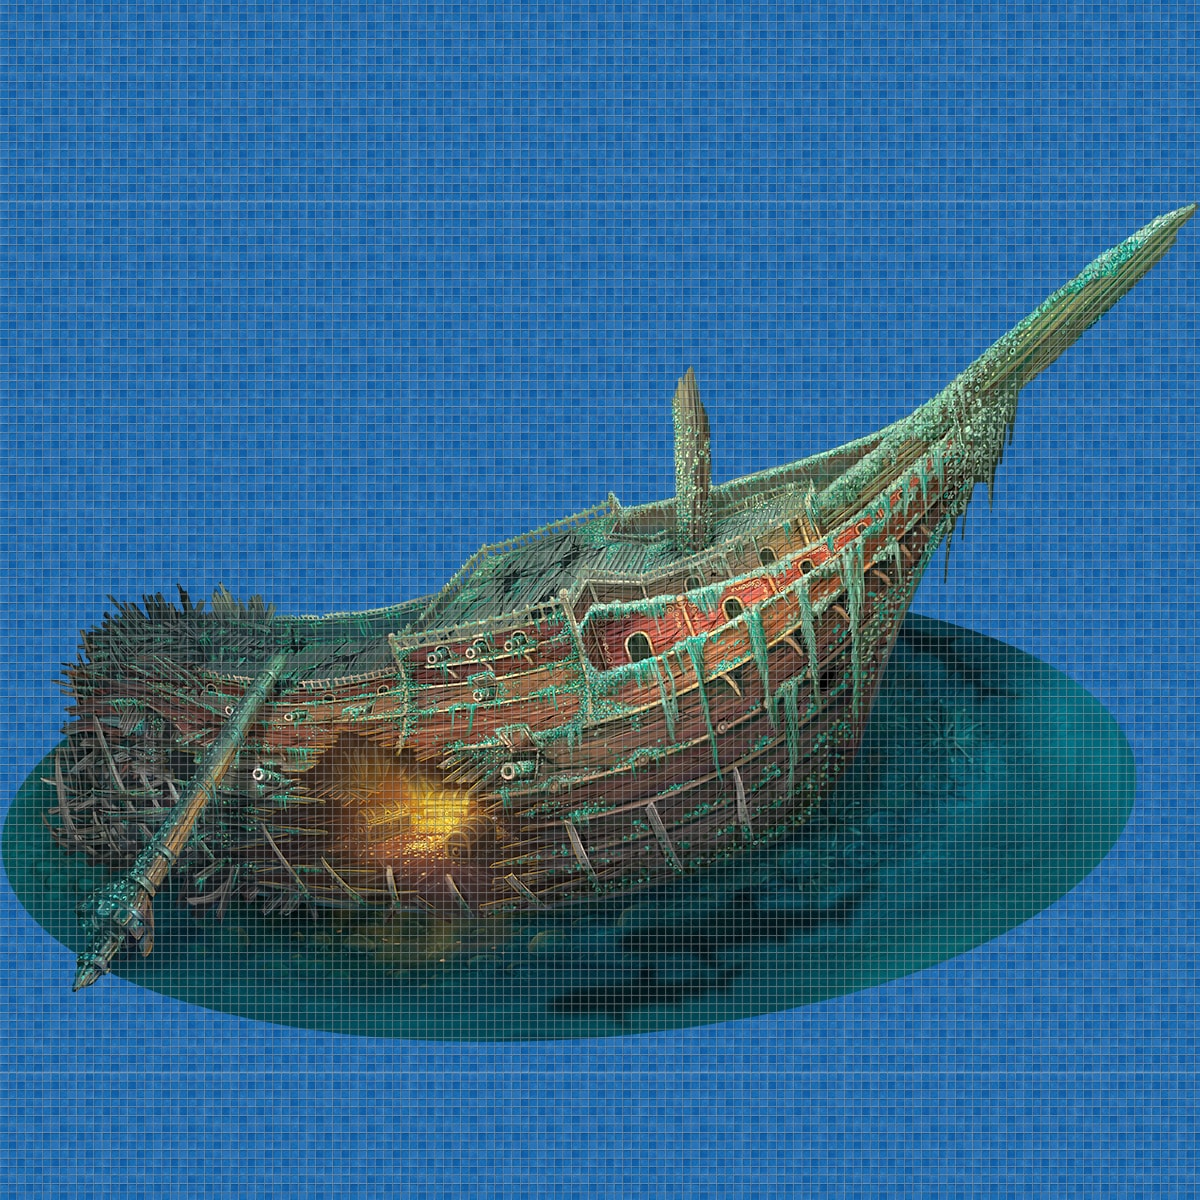 Treasure-Ship-Digital-Print-Mosaic-Ezarri.jpg